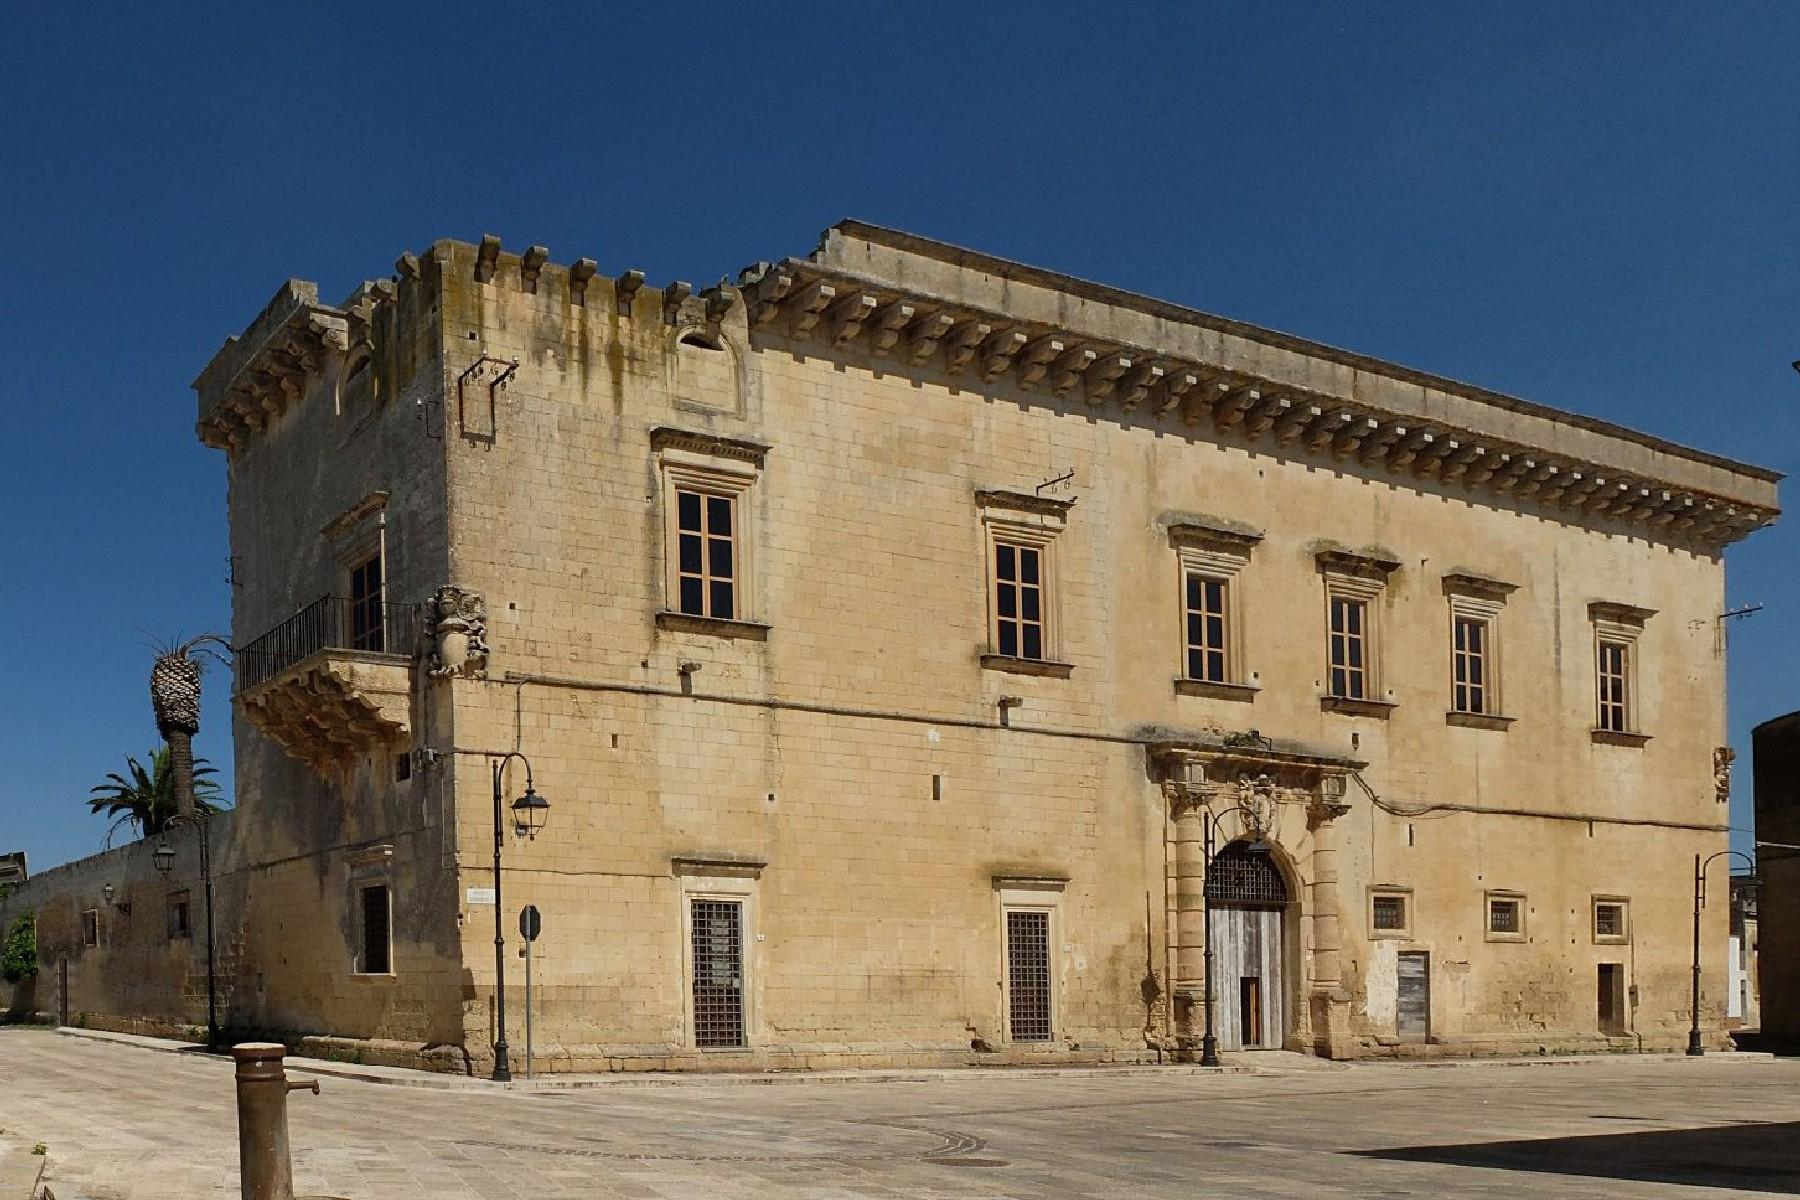 Ancient and imposing Palace in the neighborhood of the Baroque city of Lecce - 1